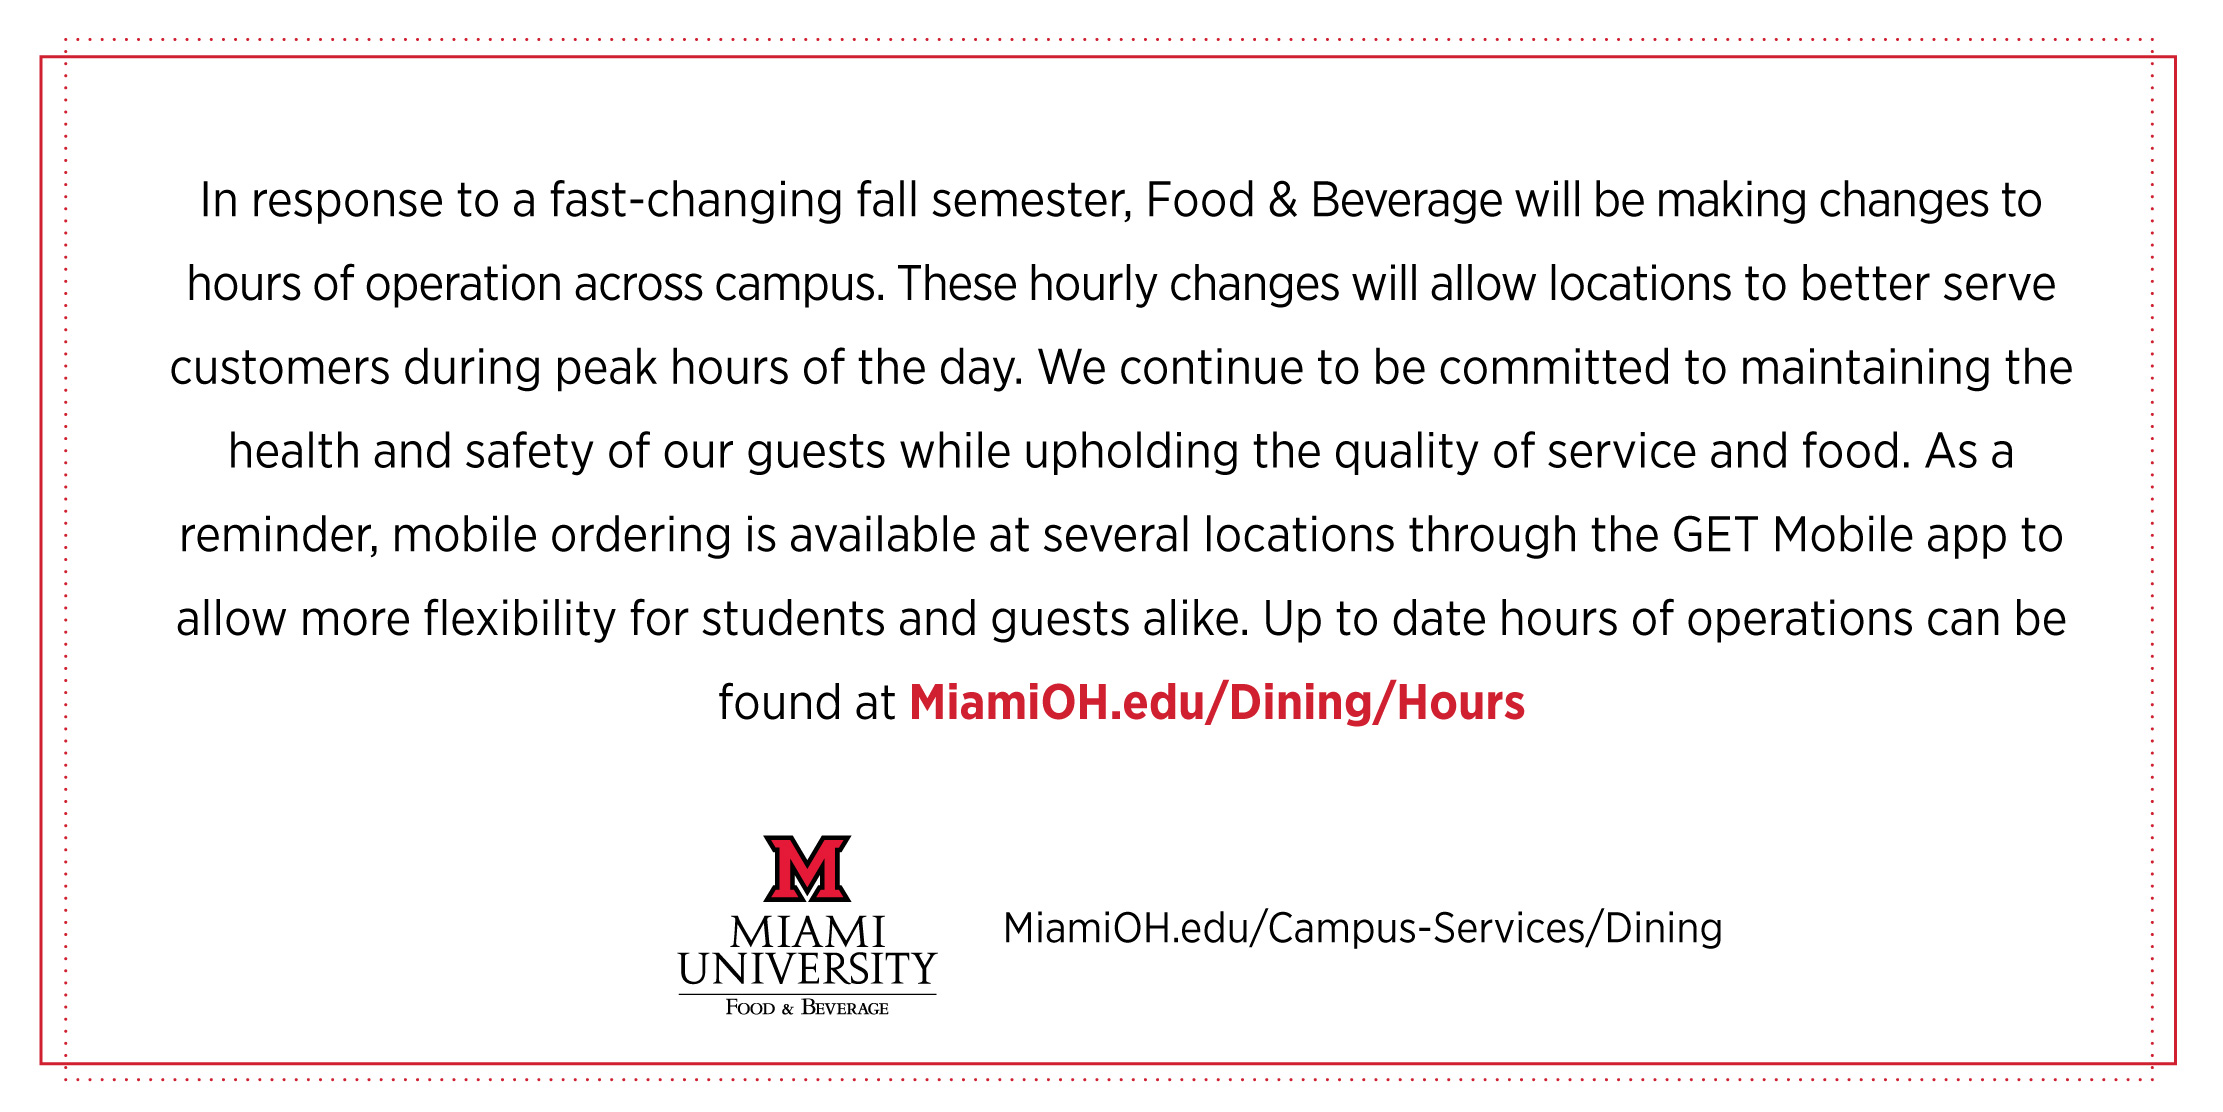 Food & Beverage will be making changes to hours of operation across campus.